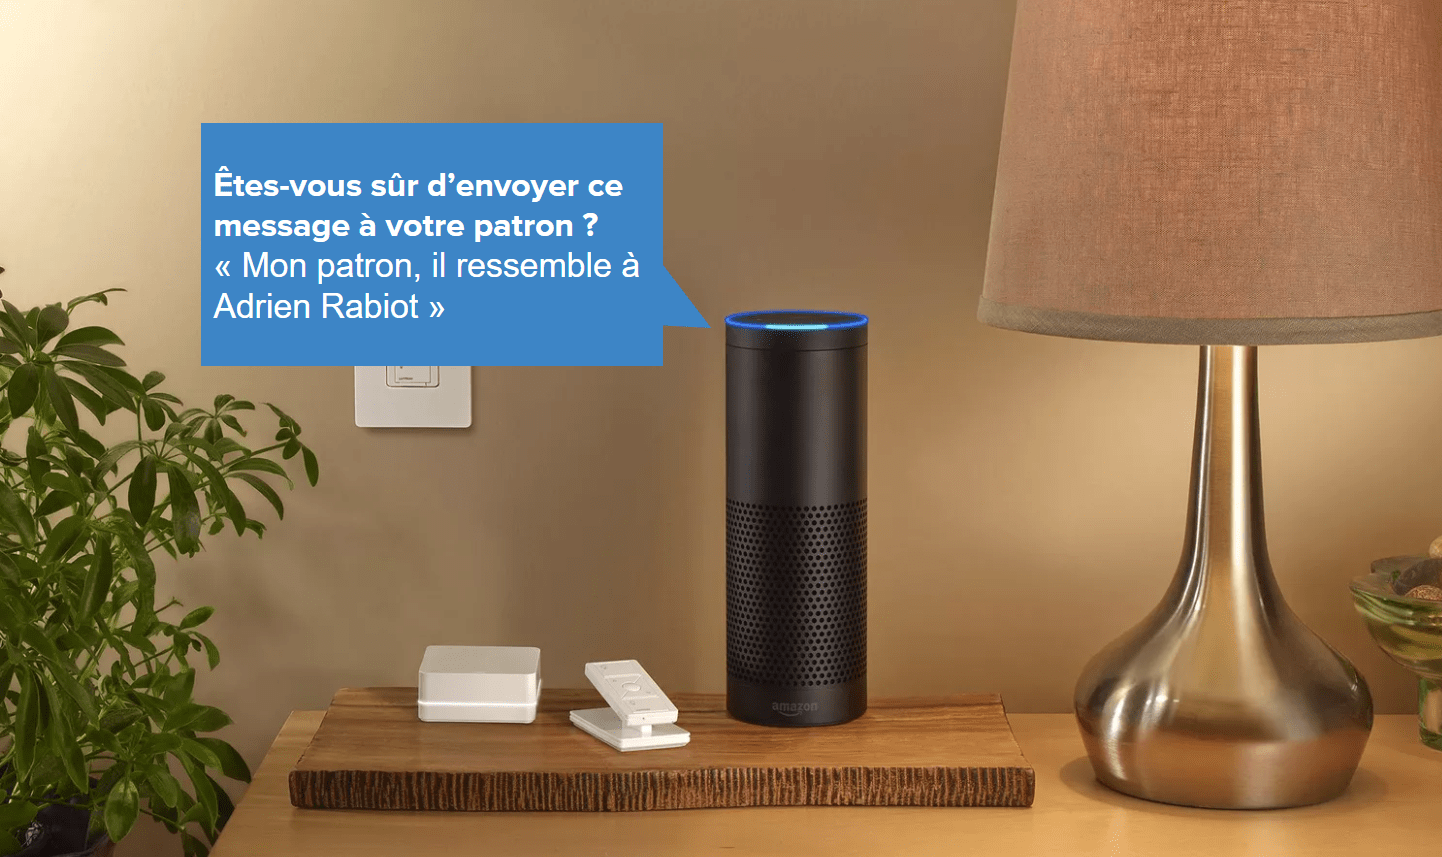 L'assistant vocal Amazon Alexa enregistre et envoie la conversation privée d'un couple